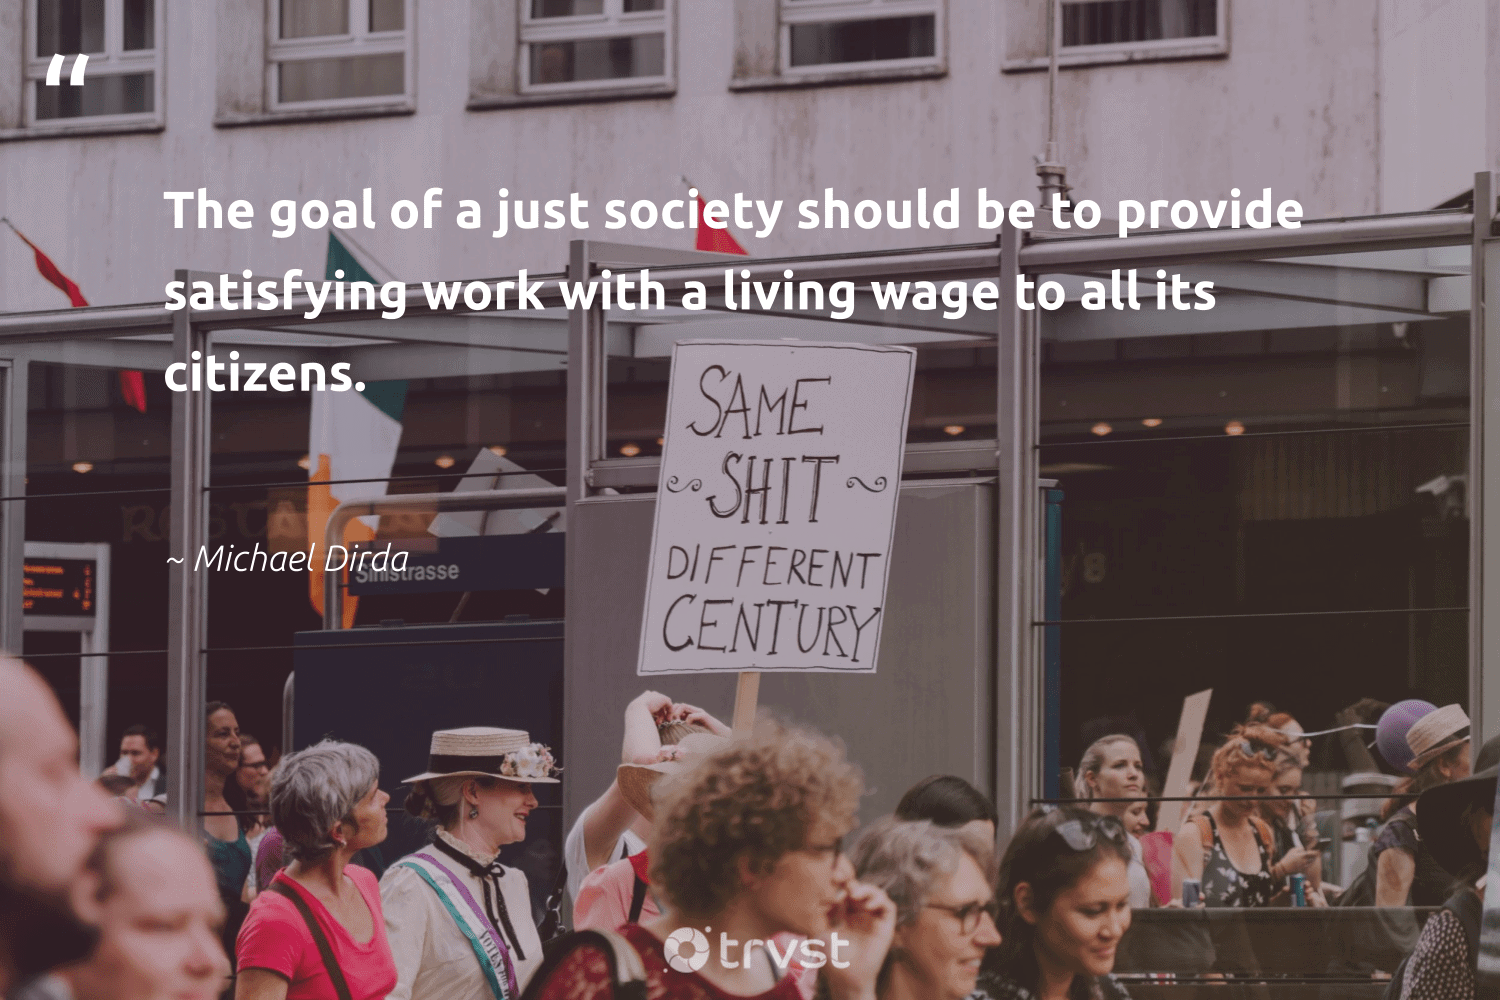 """The goal of a just society should be to provide satisfying work with a living wage to all its citizens.""  - Michael Dirda #trvst #quotes #society #weareallone #collectiveaction #makeadifference #takeaction #socialchange #bethechange #socialgood #thinkgreen #giveback"